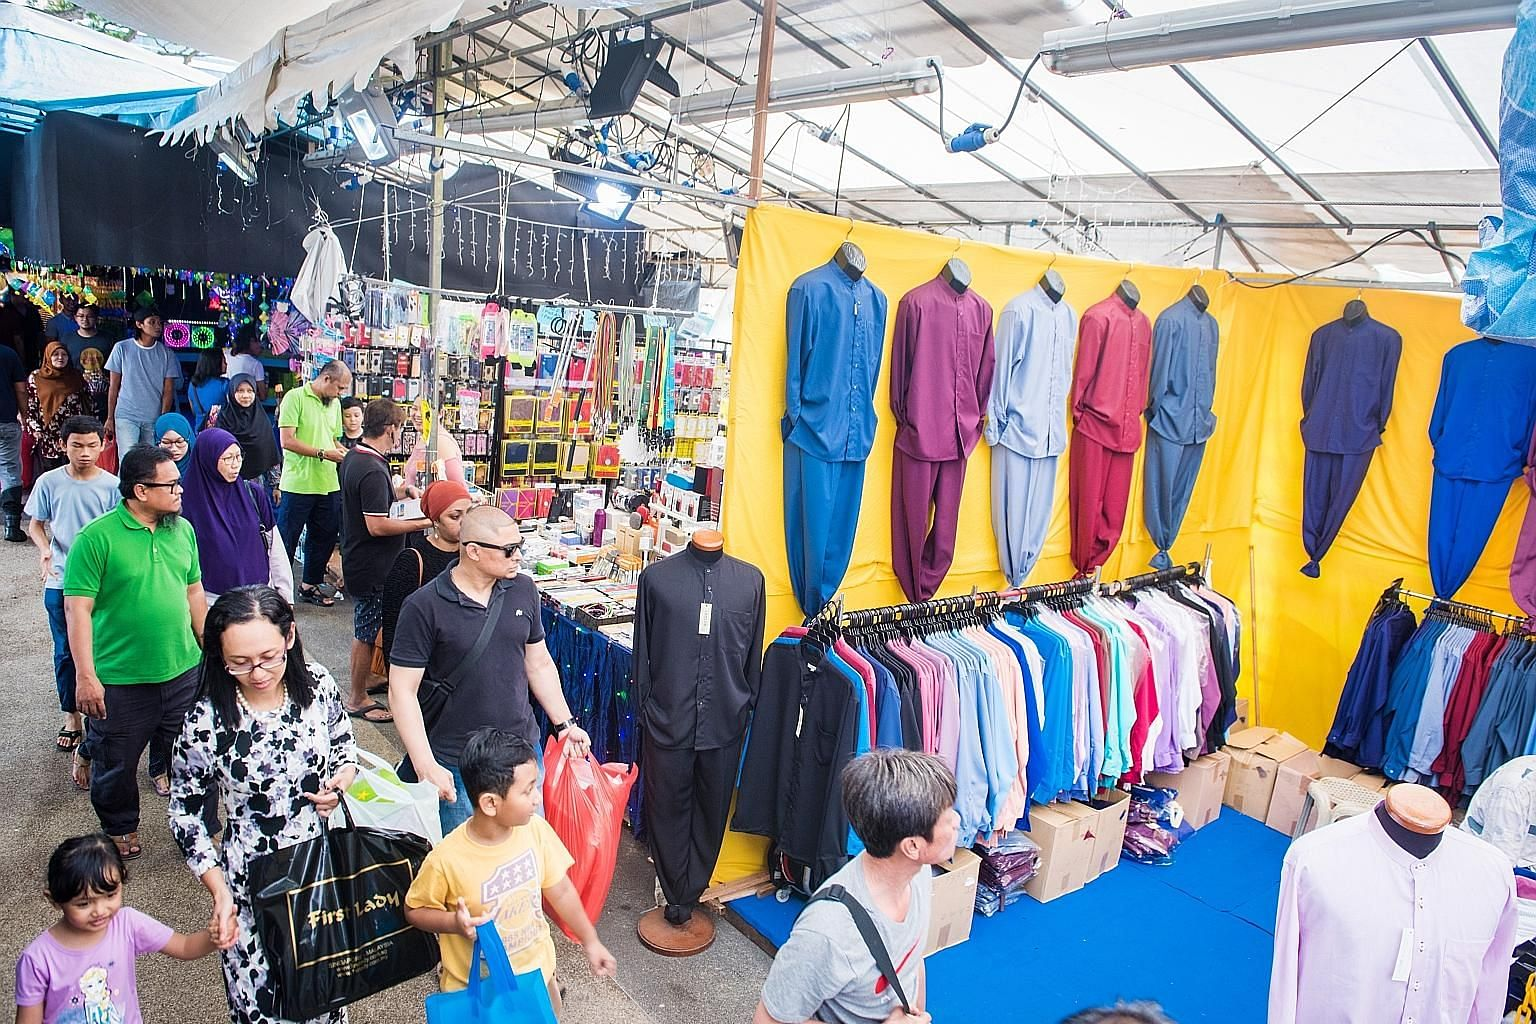 Operators for the major sections of the Ramadan bazaar are chosen via two tenders called by a working committee under the Geylang Serai CCC. This year, one player, BXW, won both tenders with bids worth a combined $2.25 million.